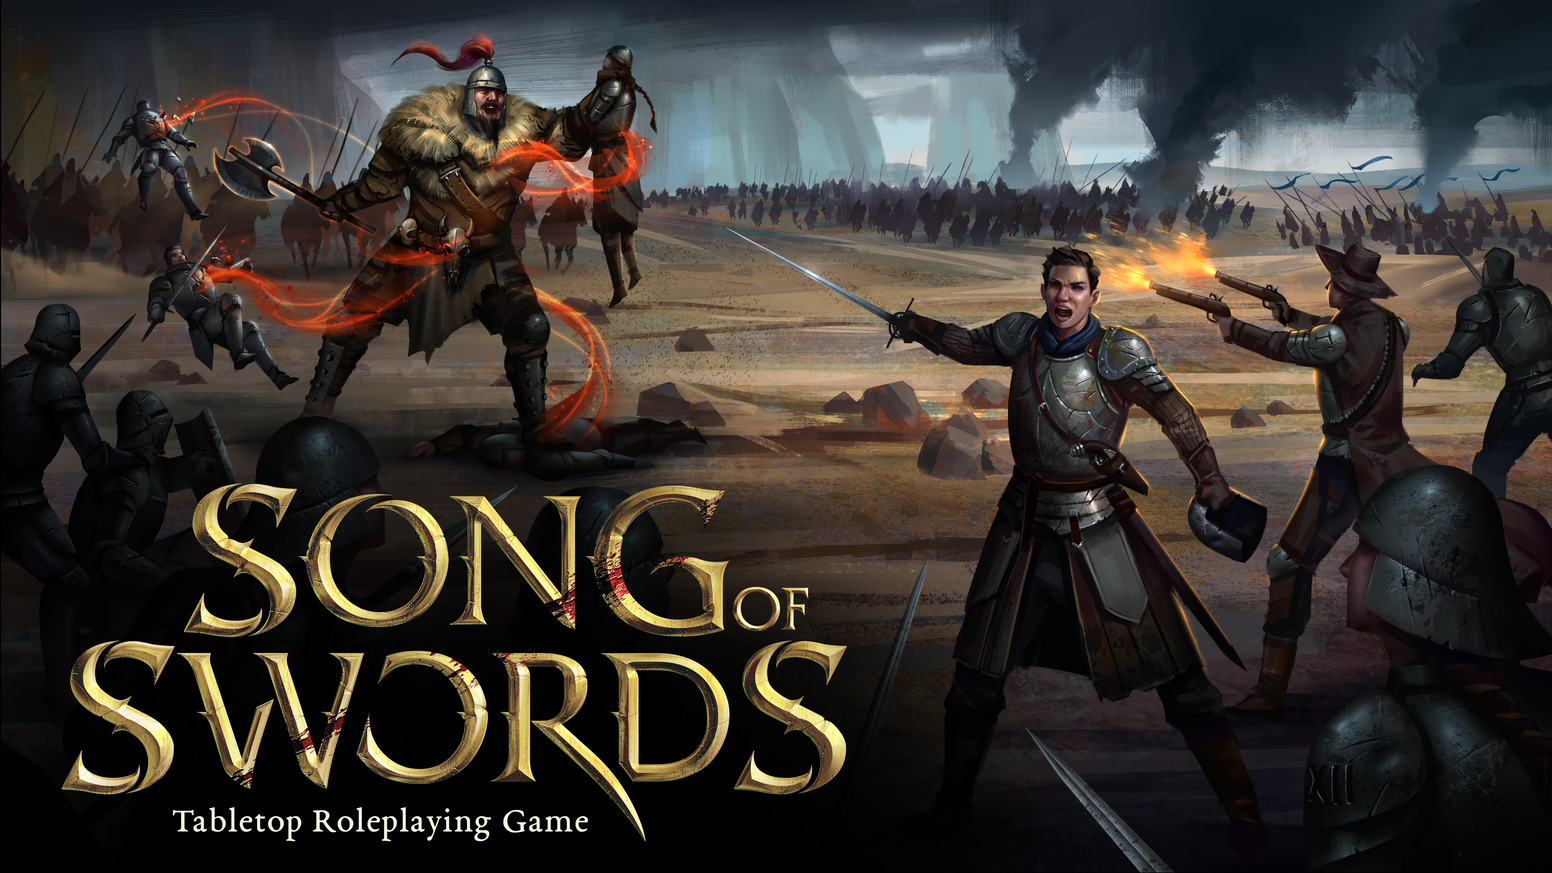 Song of Swords is a tabletop roleplaying game focused on taking combat to the next level. Perfect for historical and fantasy campaigns!